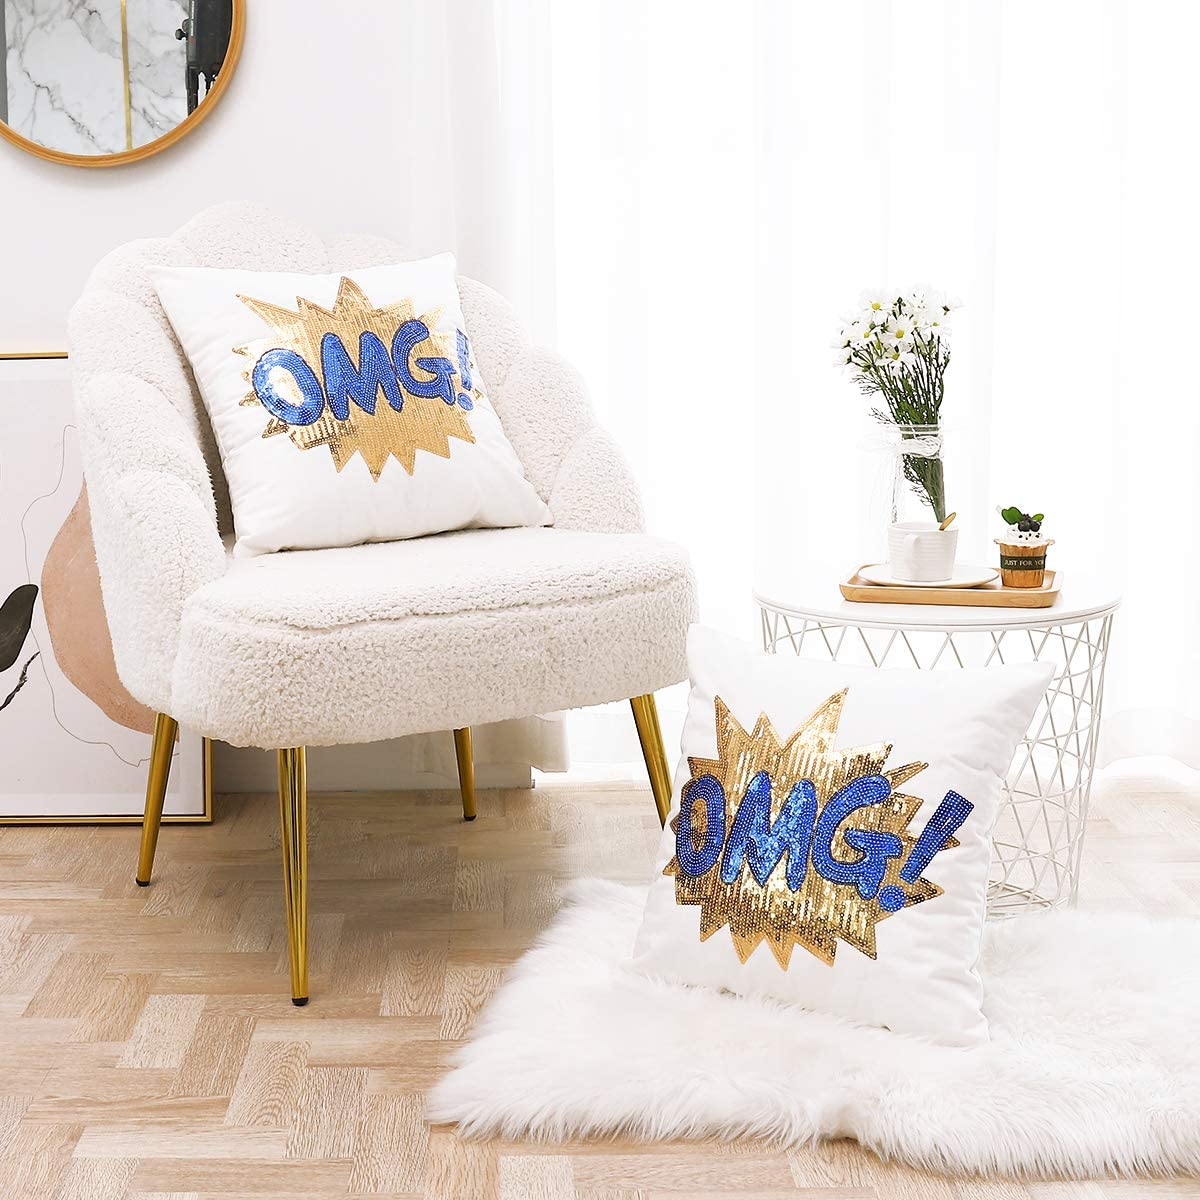 Decorative Throw Pillow Covers 18x18 Inches Set of 2, Christmas decor Cotton Pillowcases, Sequins Embroidered OMG Pattern Cushion Case for Couch, Bedroom, and Living room Party, (Golden and Blue)